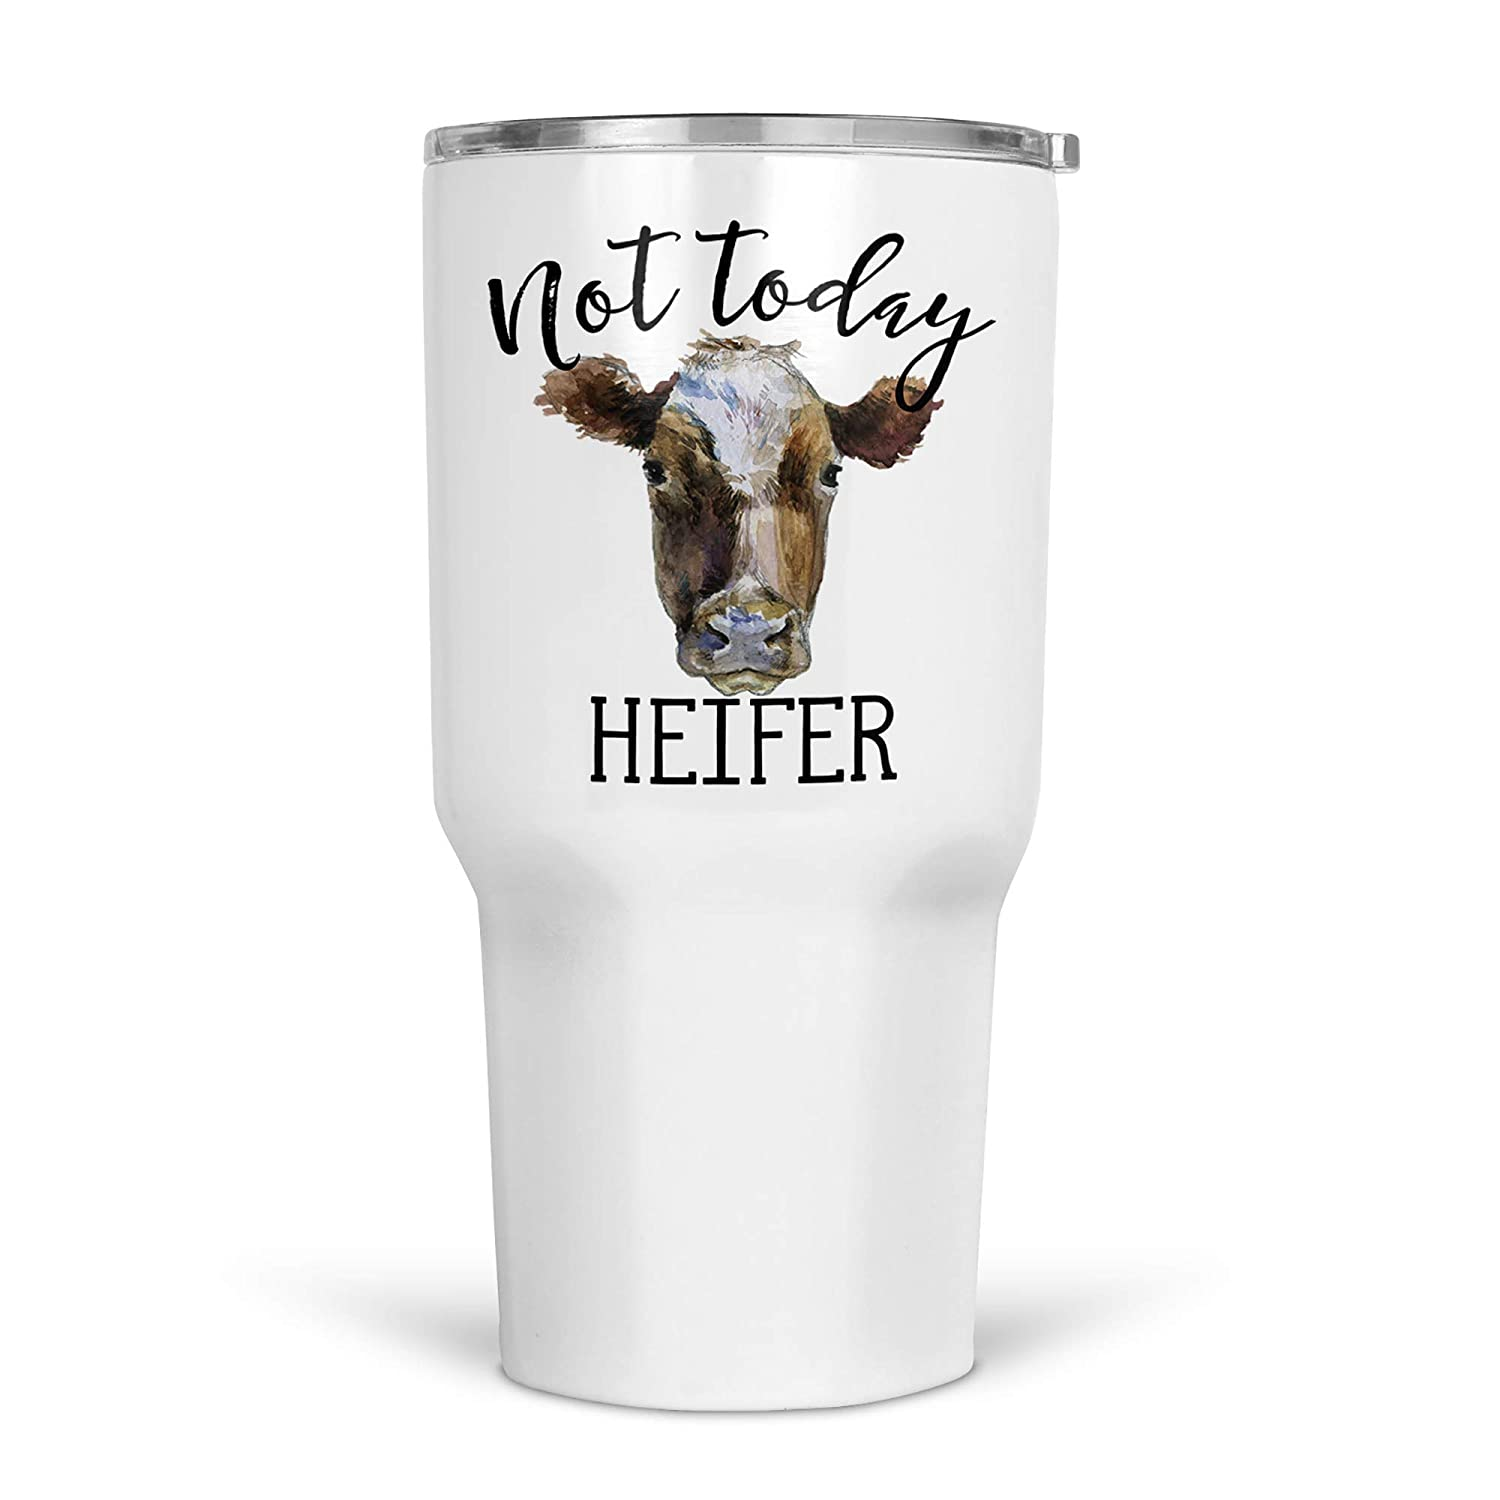 Popular products Not Today Heifer Tumbler with Steel Insulated Wholesale Tumb Lid Stainless